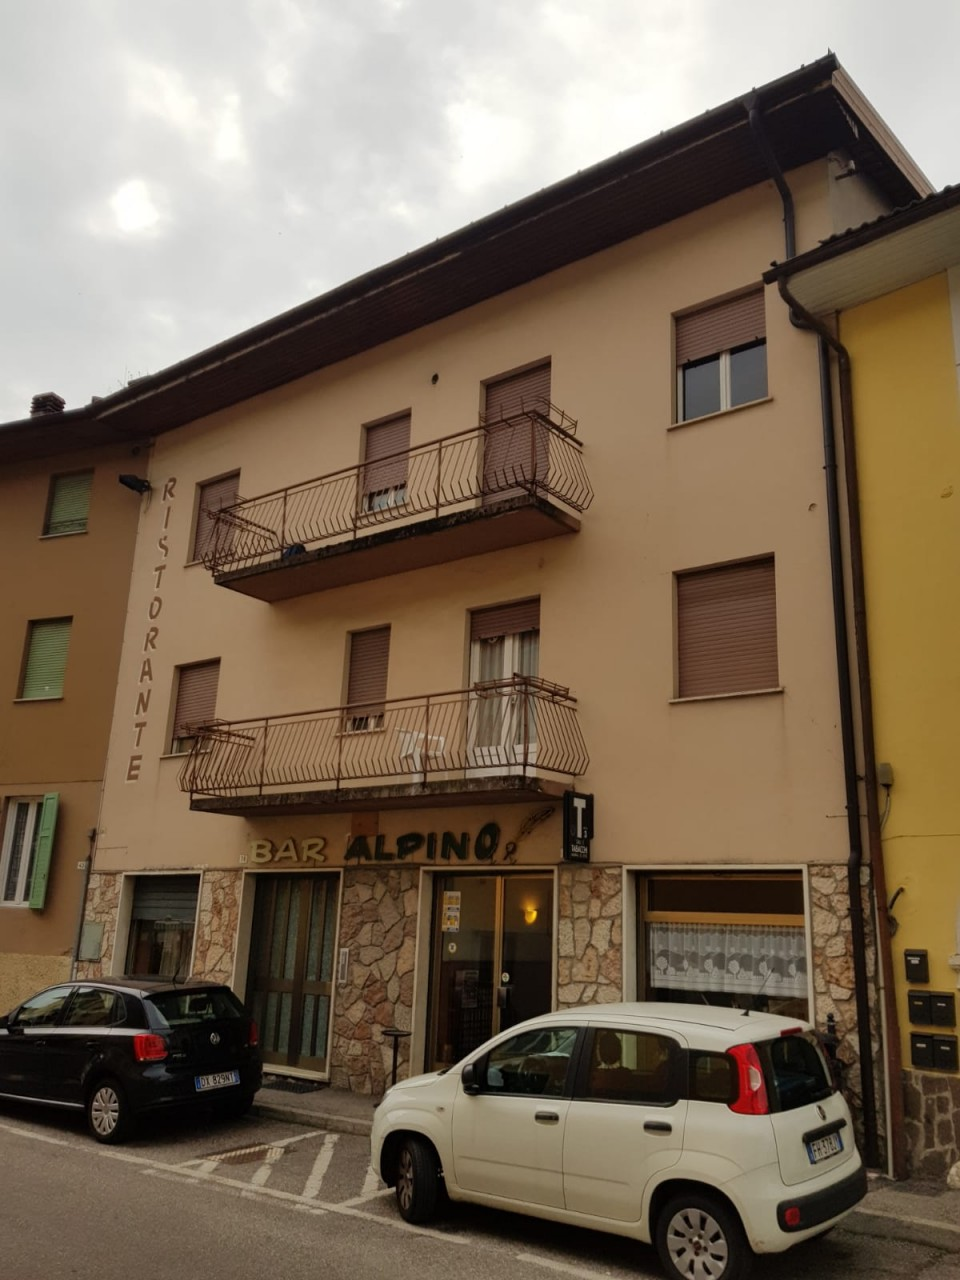 Portion of house in Levico Terme with bar and tobacconist's license